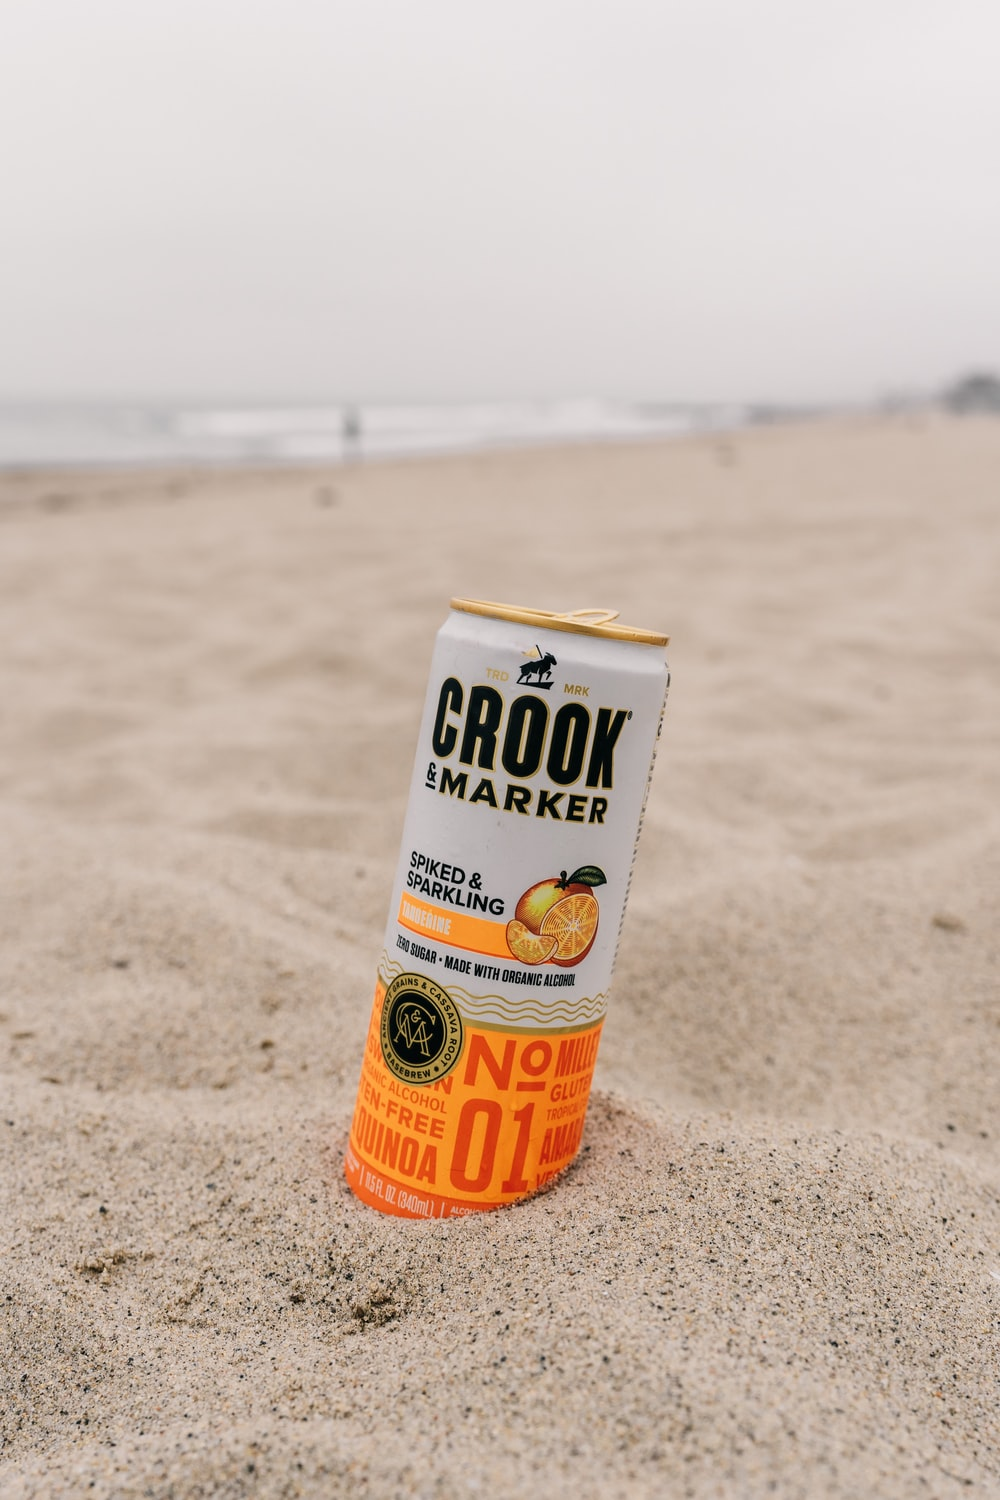 Crook marker can